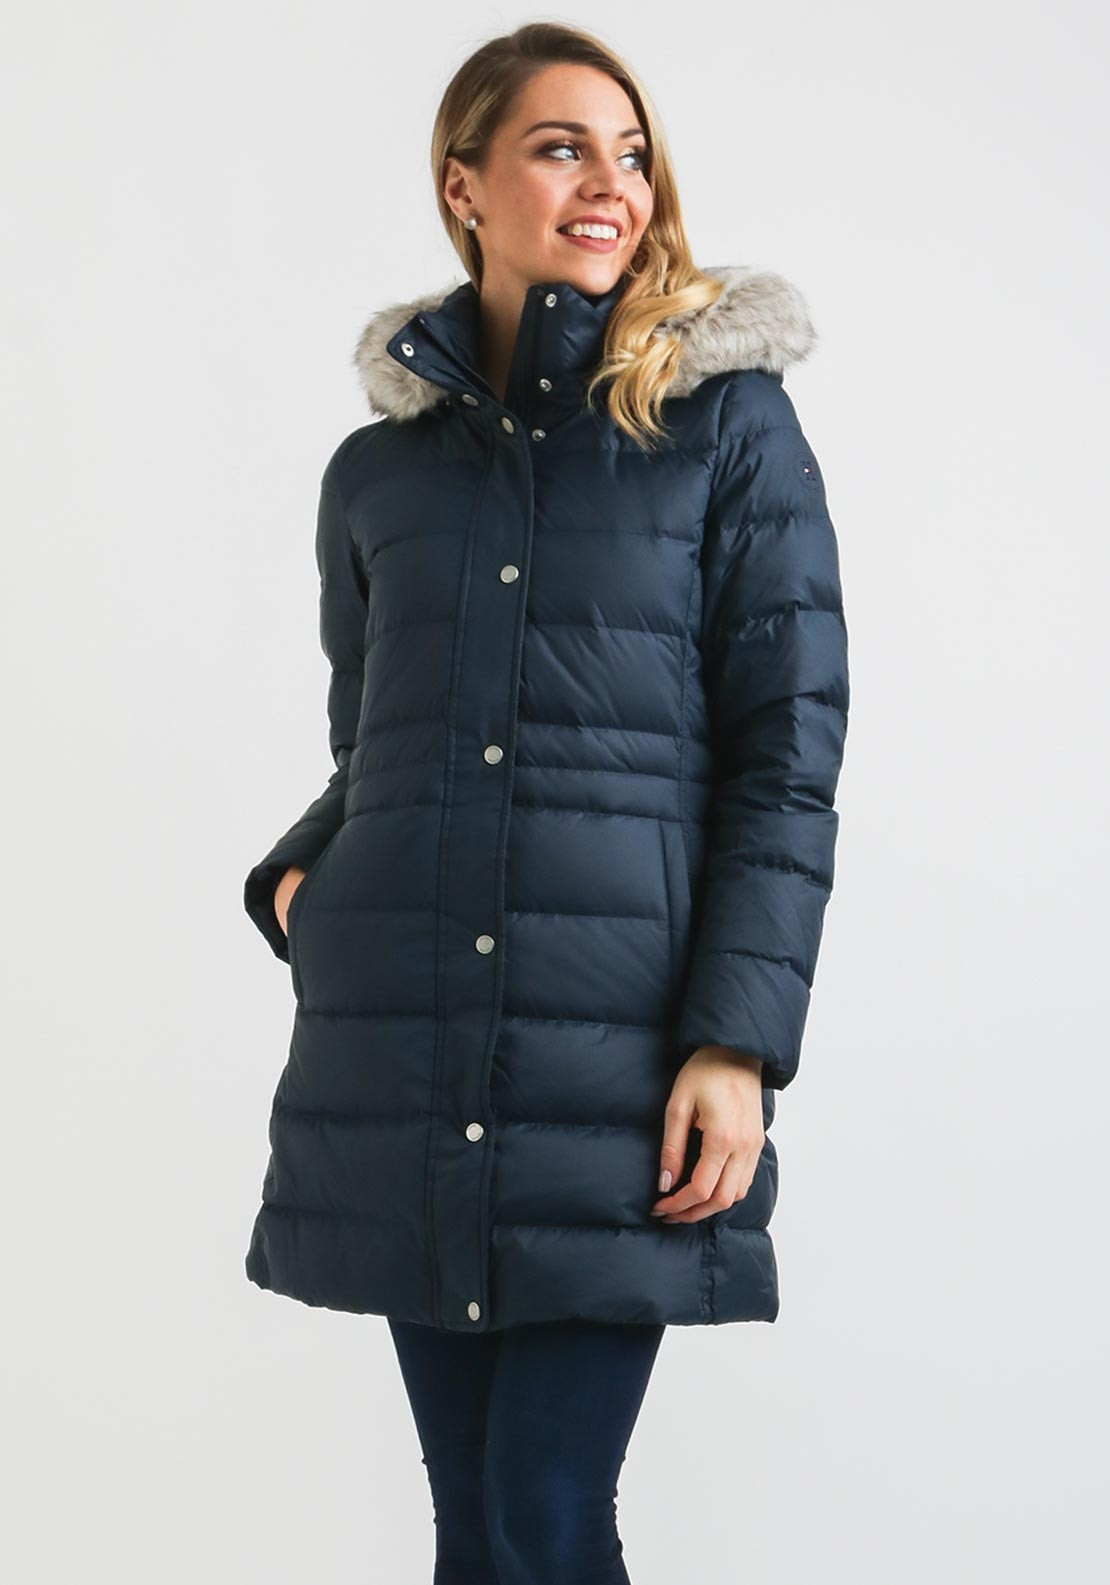 8919b7455b6 Video. Tommy Hilfiger Womens Tyra Quilted Coat